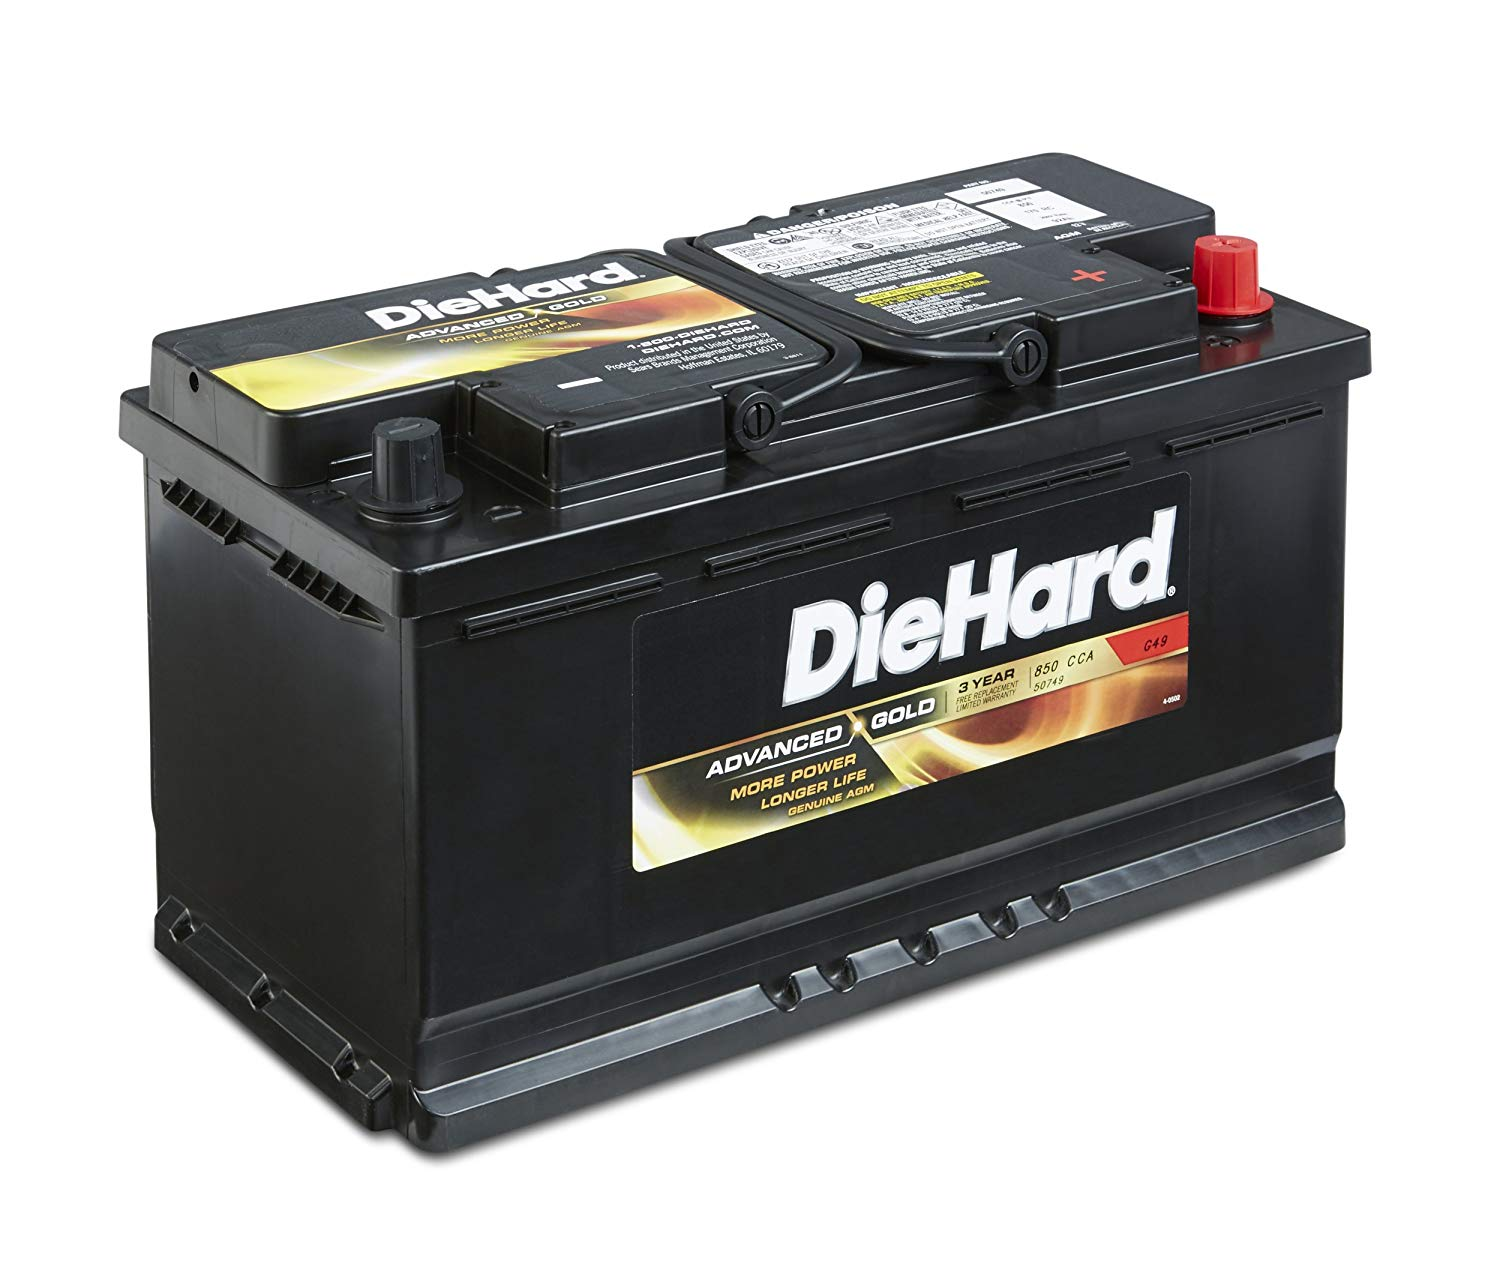 DieHard 38217 Group Advanced Gold AGM Battery